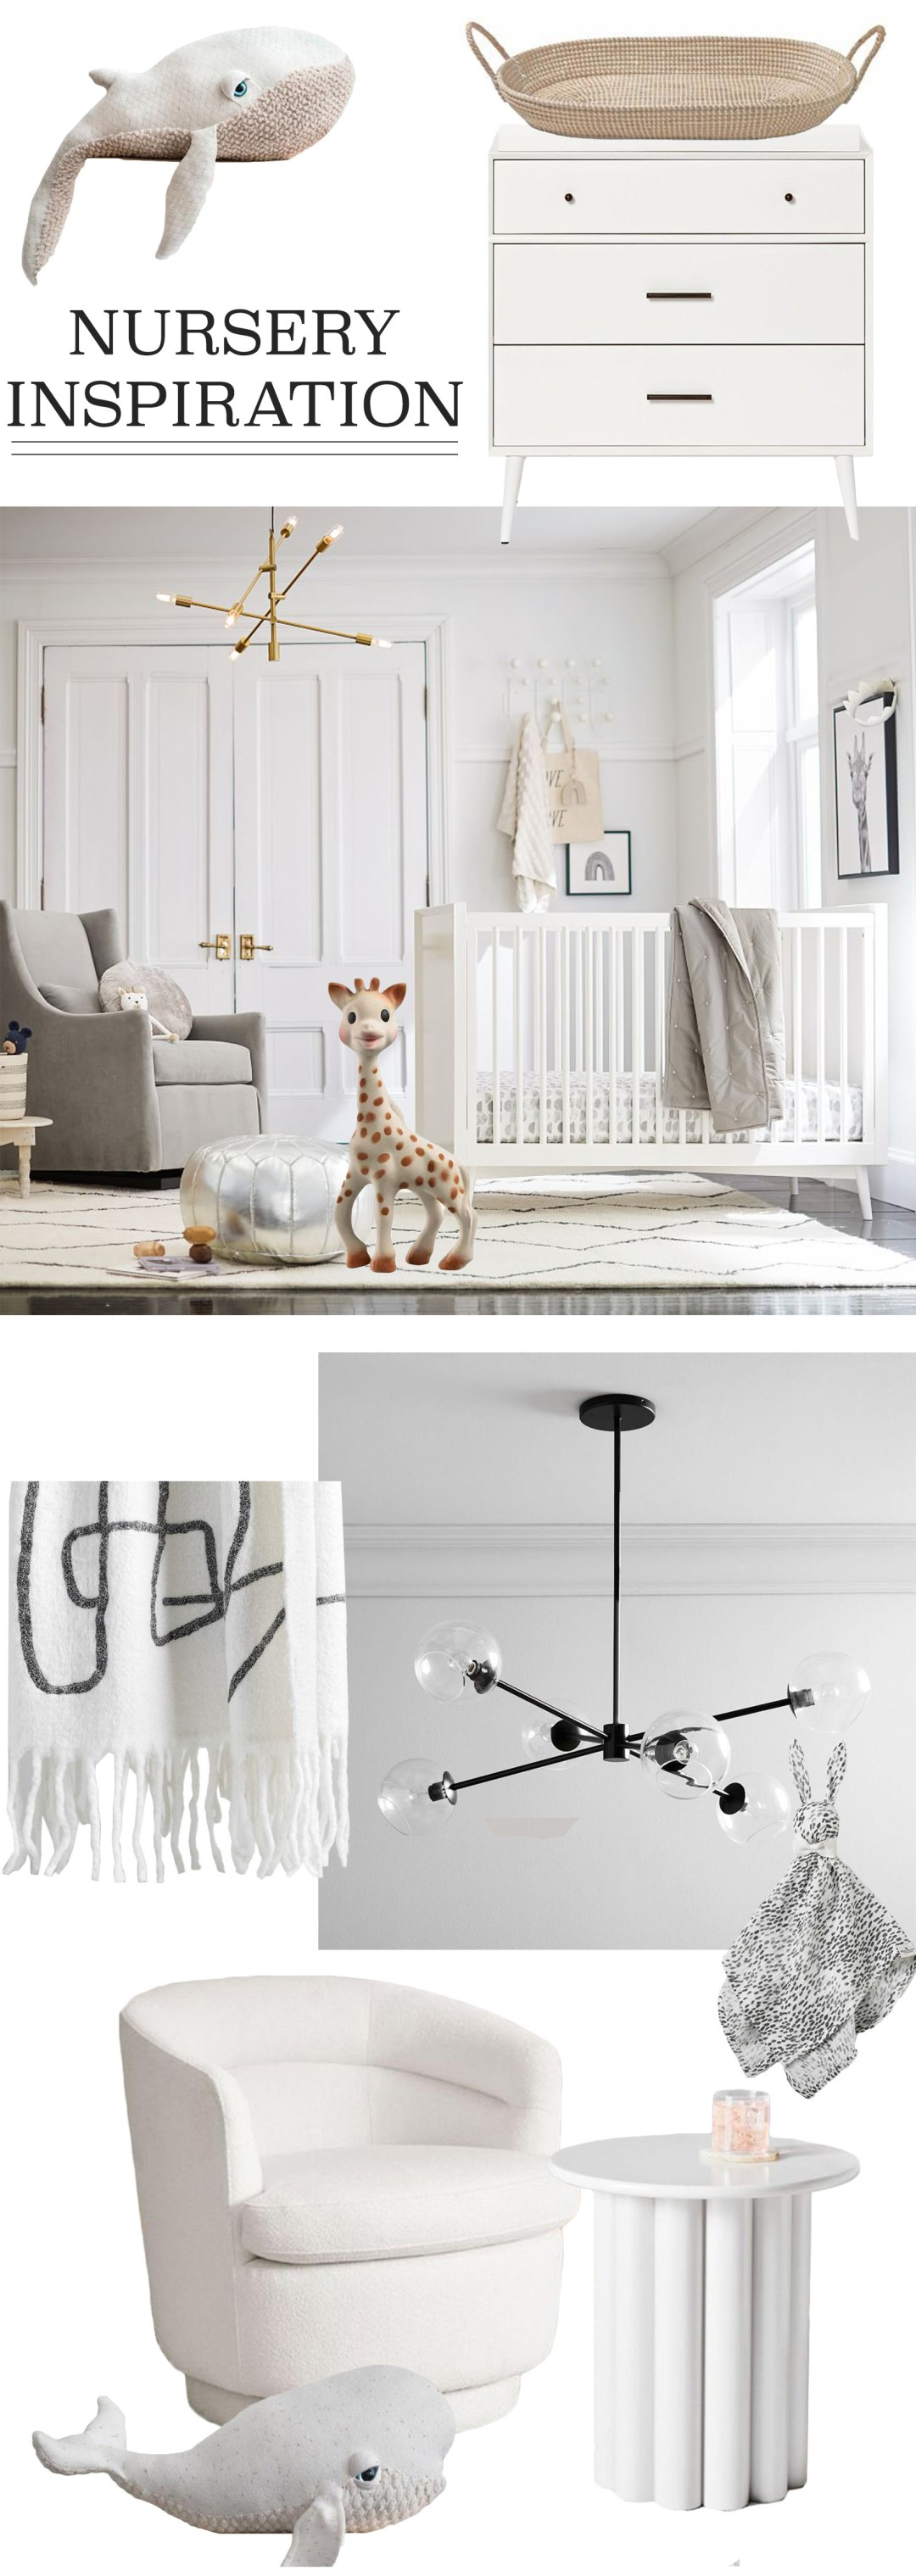 Neutral Monochrome Nursery Ideas